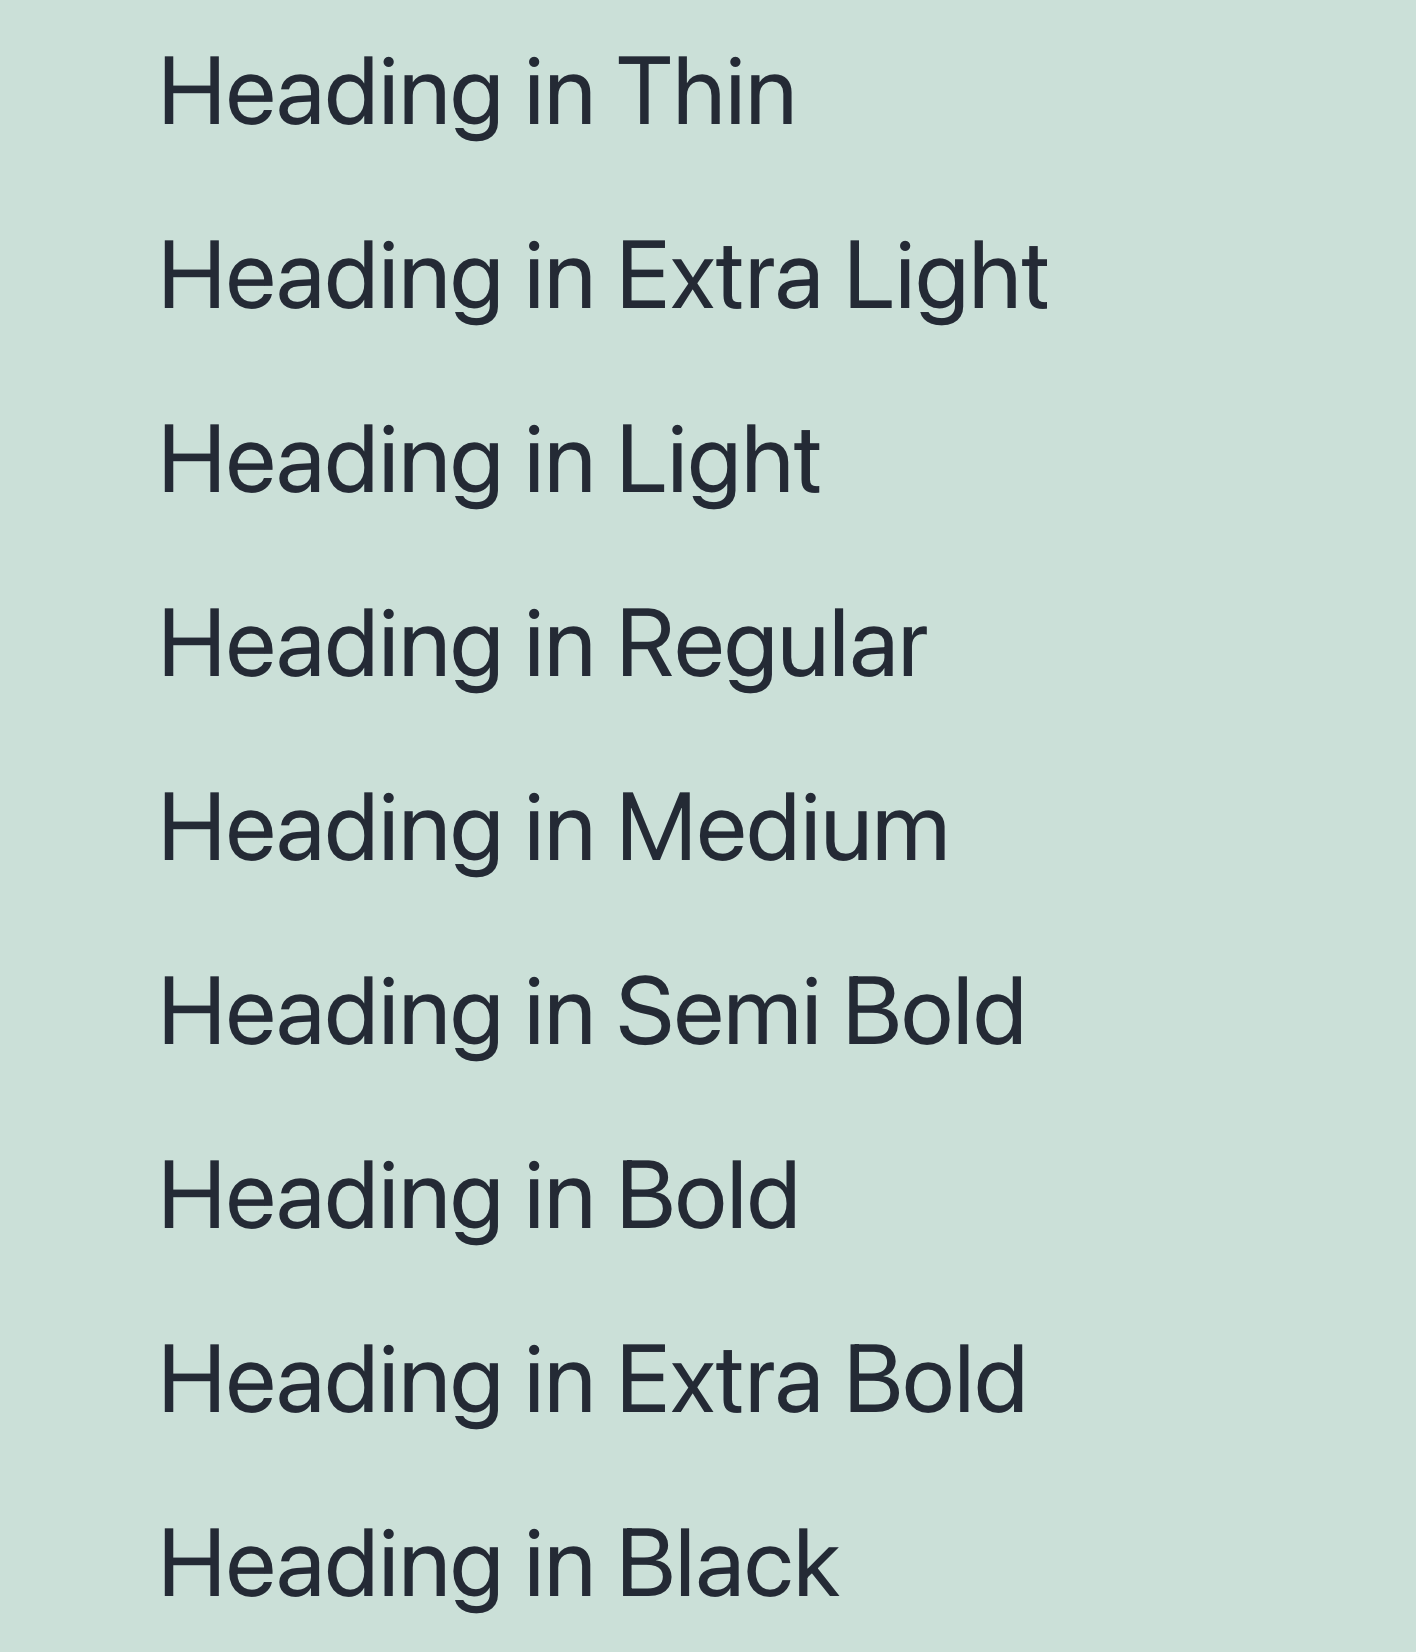 2021-07-21-gutenberg-headings-normal Heading Font Weights and List View Toggles Arrive in Block Editor and WordPress 5.8 WordPress